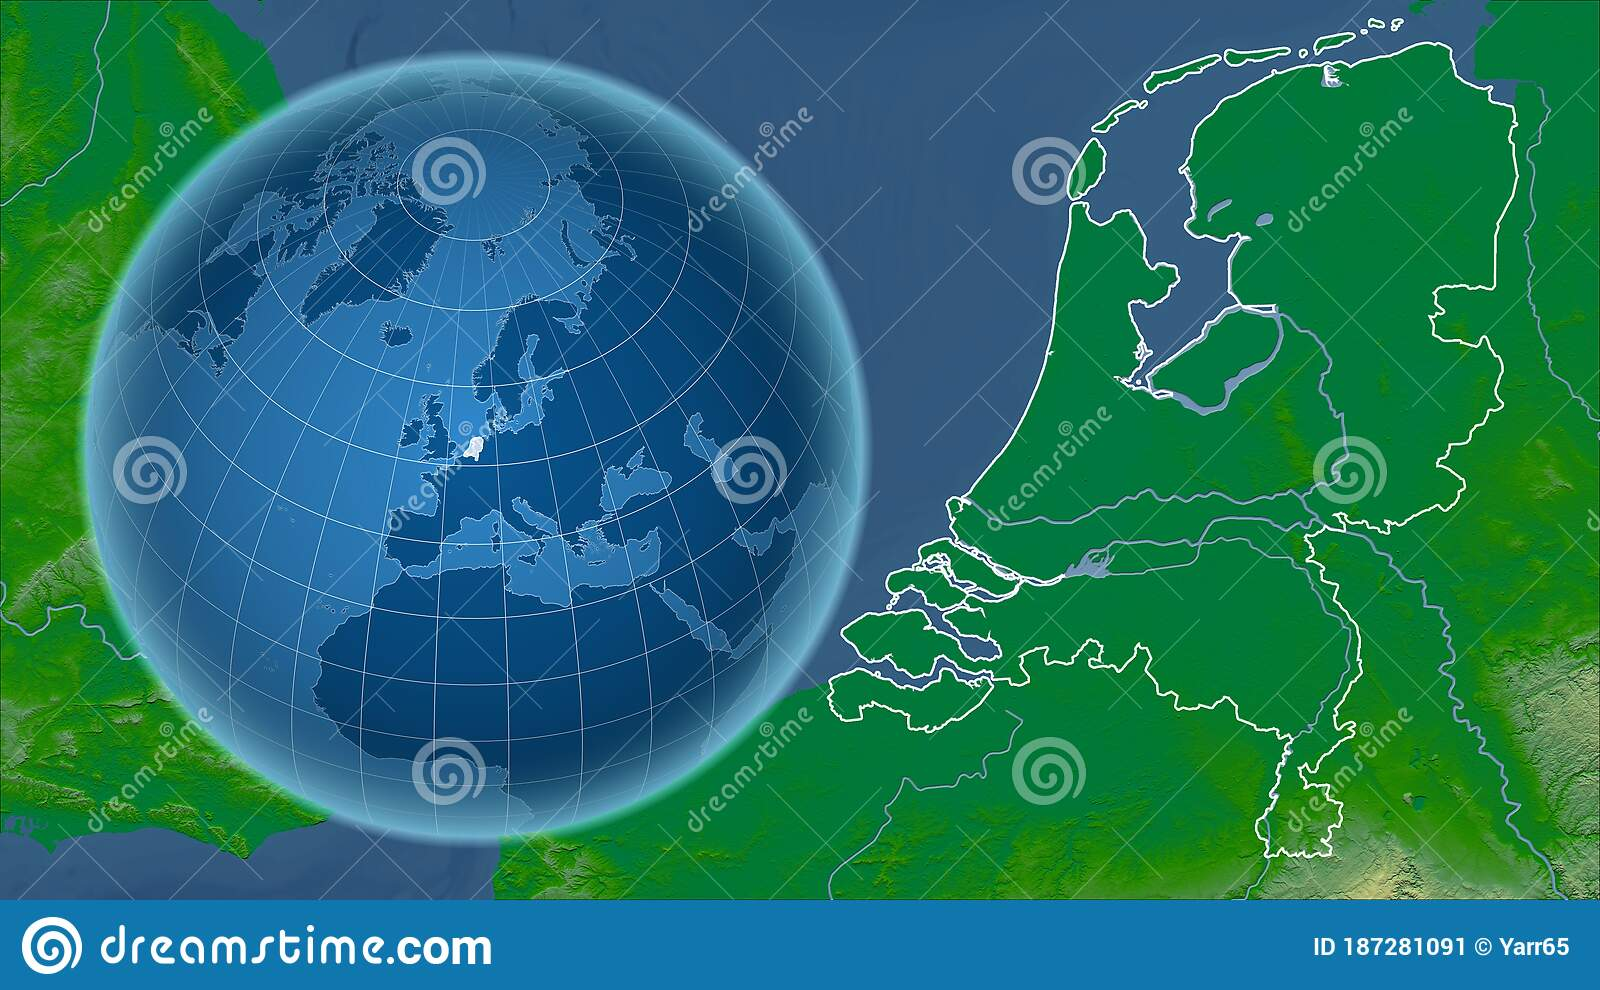 Image of: Netherlands Physical Country And Globe Composition Stock Illustration Illustration Of Globe Netherlands 187281091